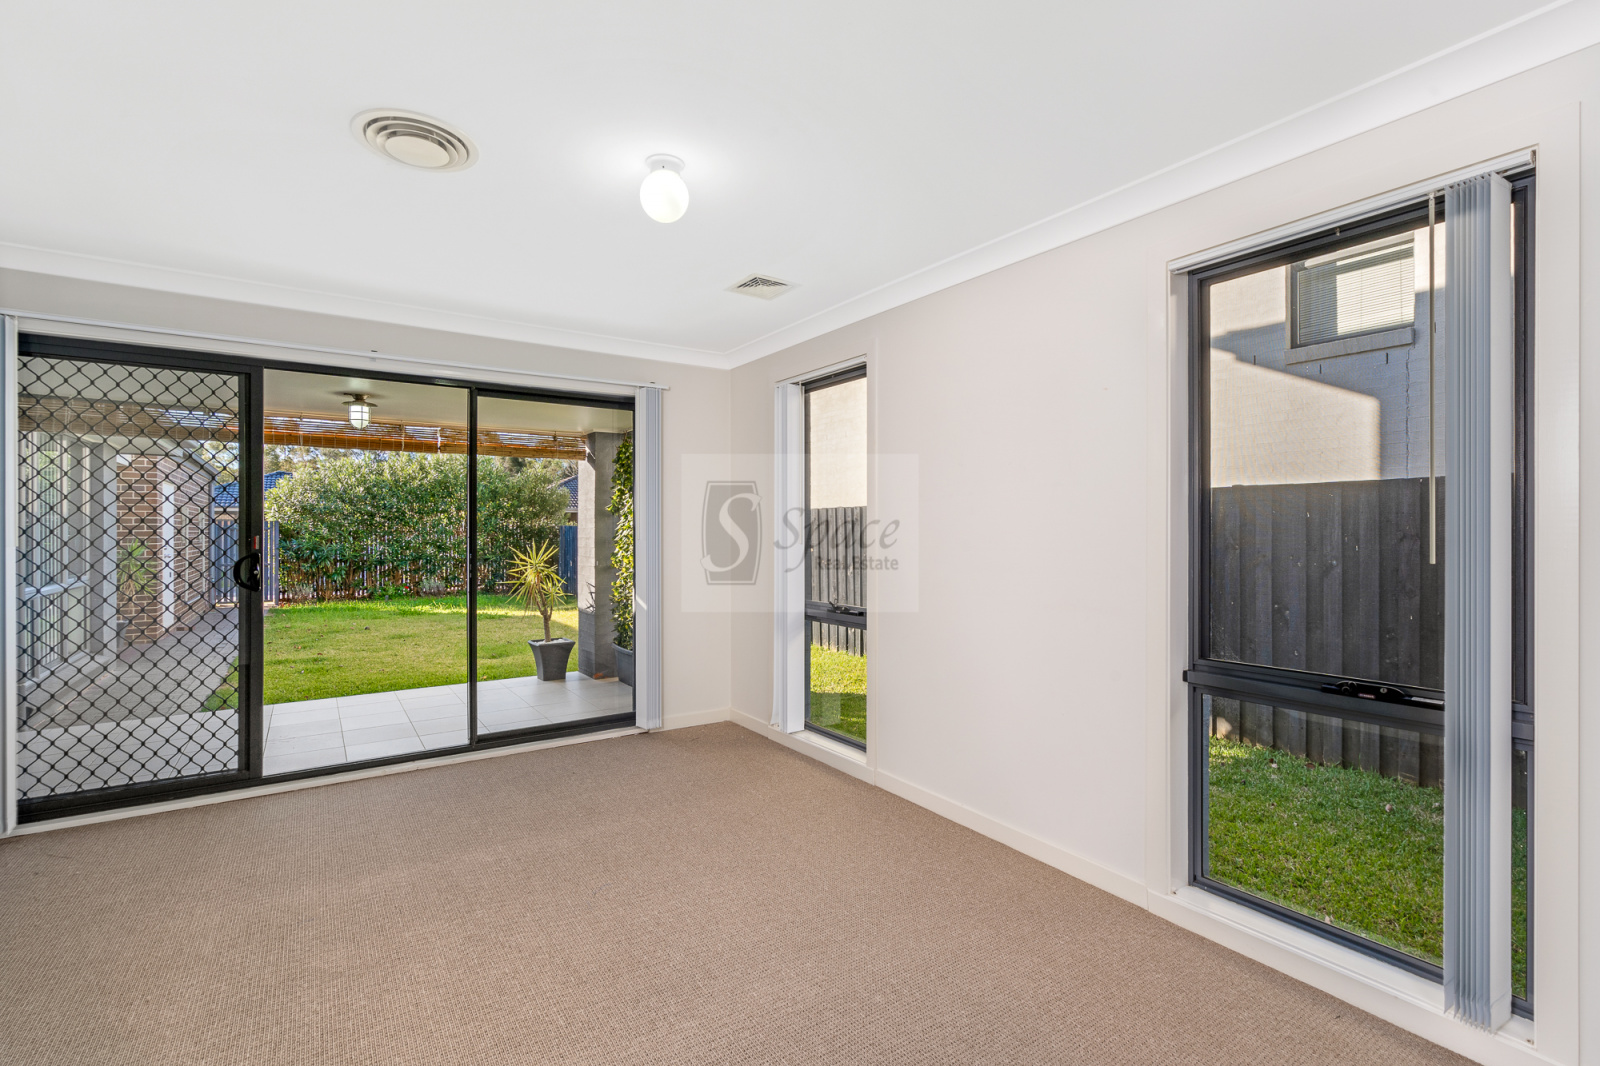 5 Glenbrae Drive,Harrington Park,NSW,5 Bedrooms Bedrooms,3 BathroomsBathrooms,House,Glenbrae Drive,1464